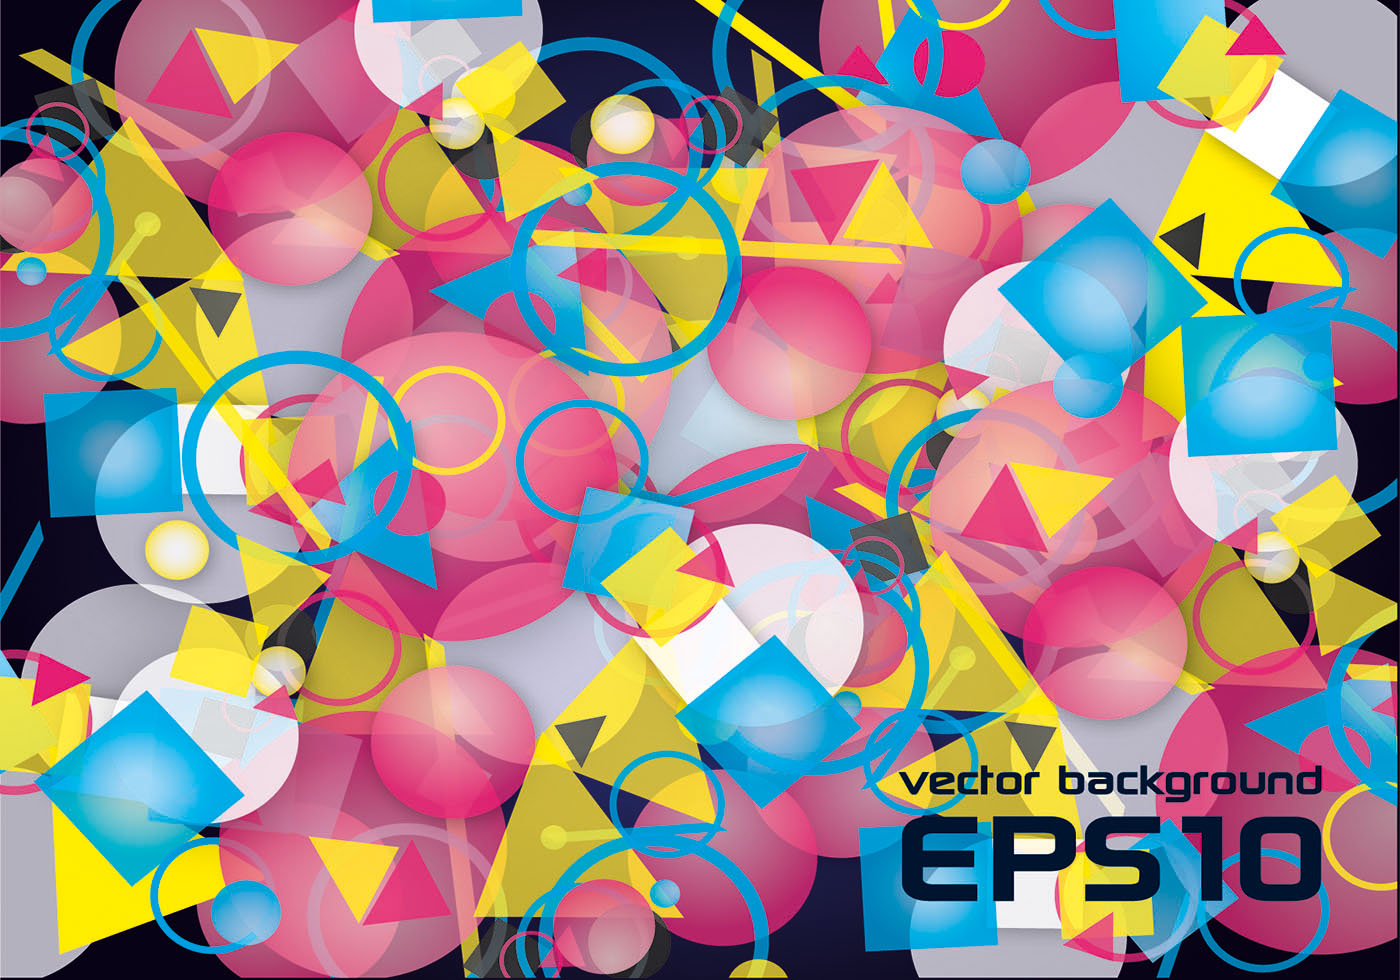 Color Abstract Vector Background Text Frame Stock Vector: Free Colorful Abstract Vector Background